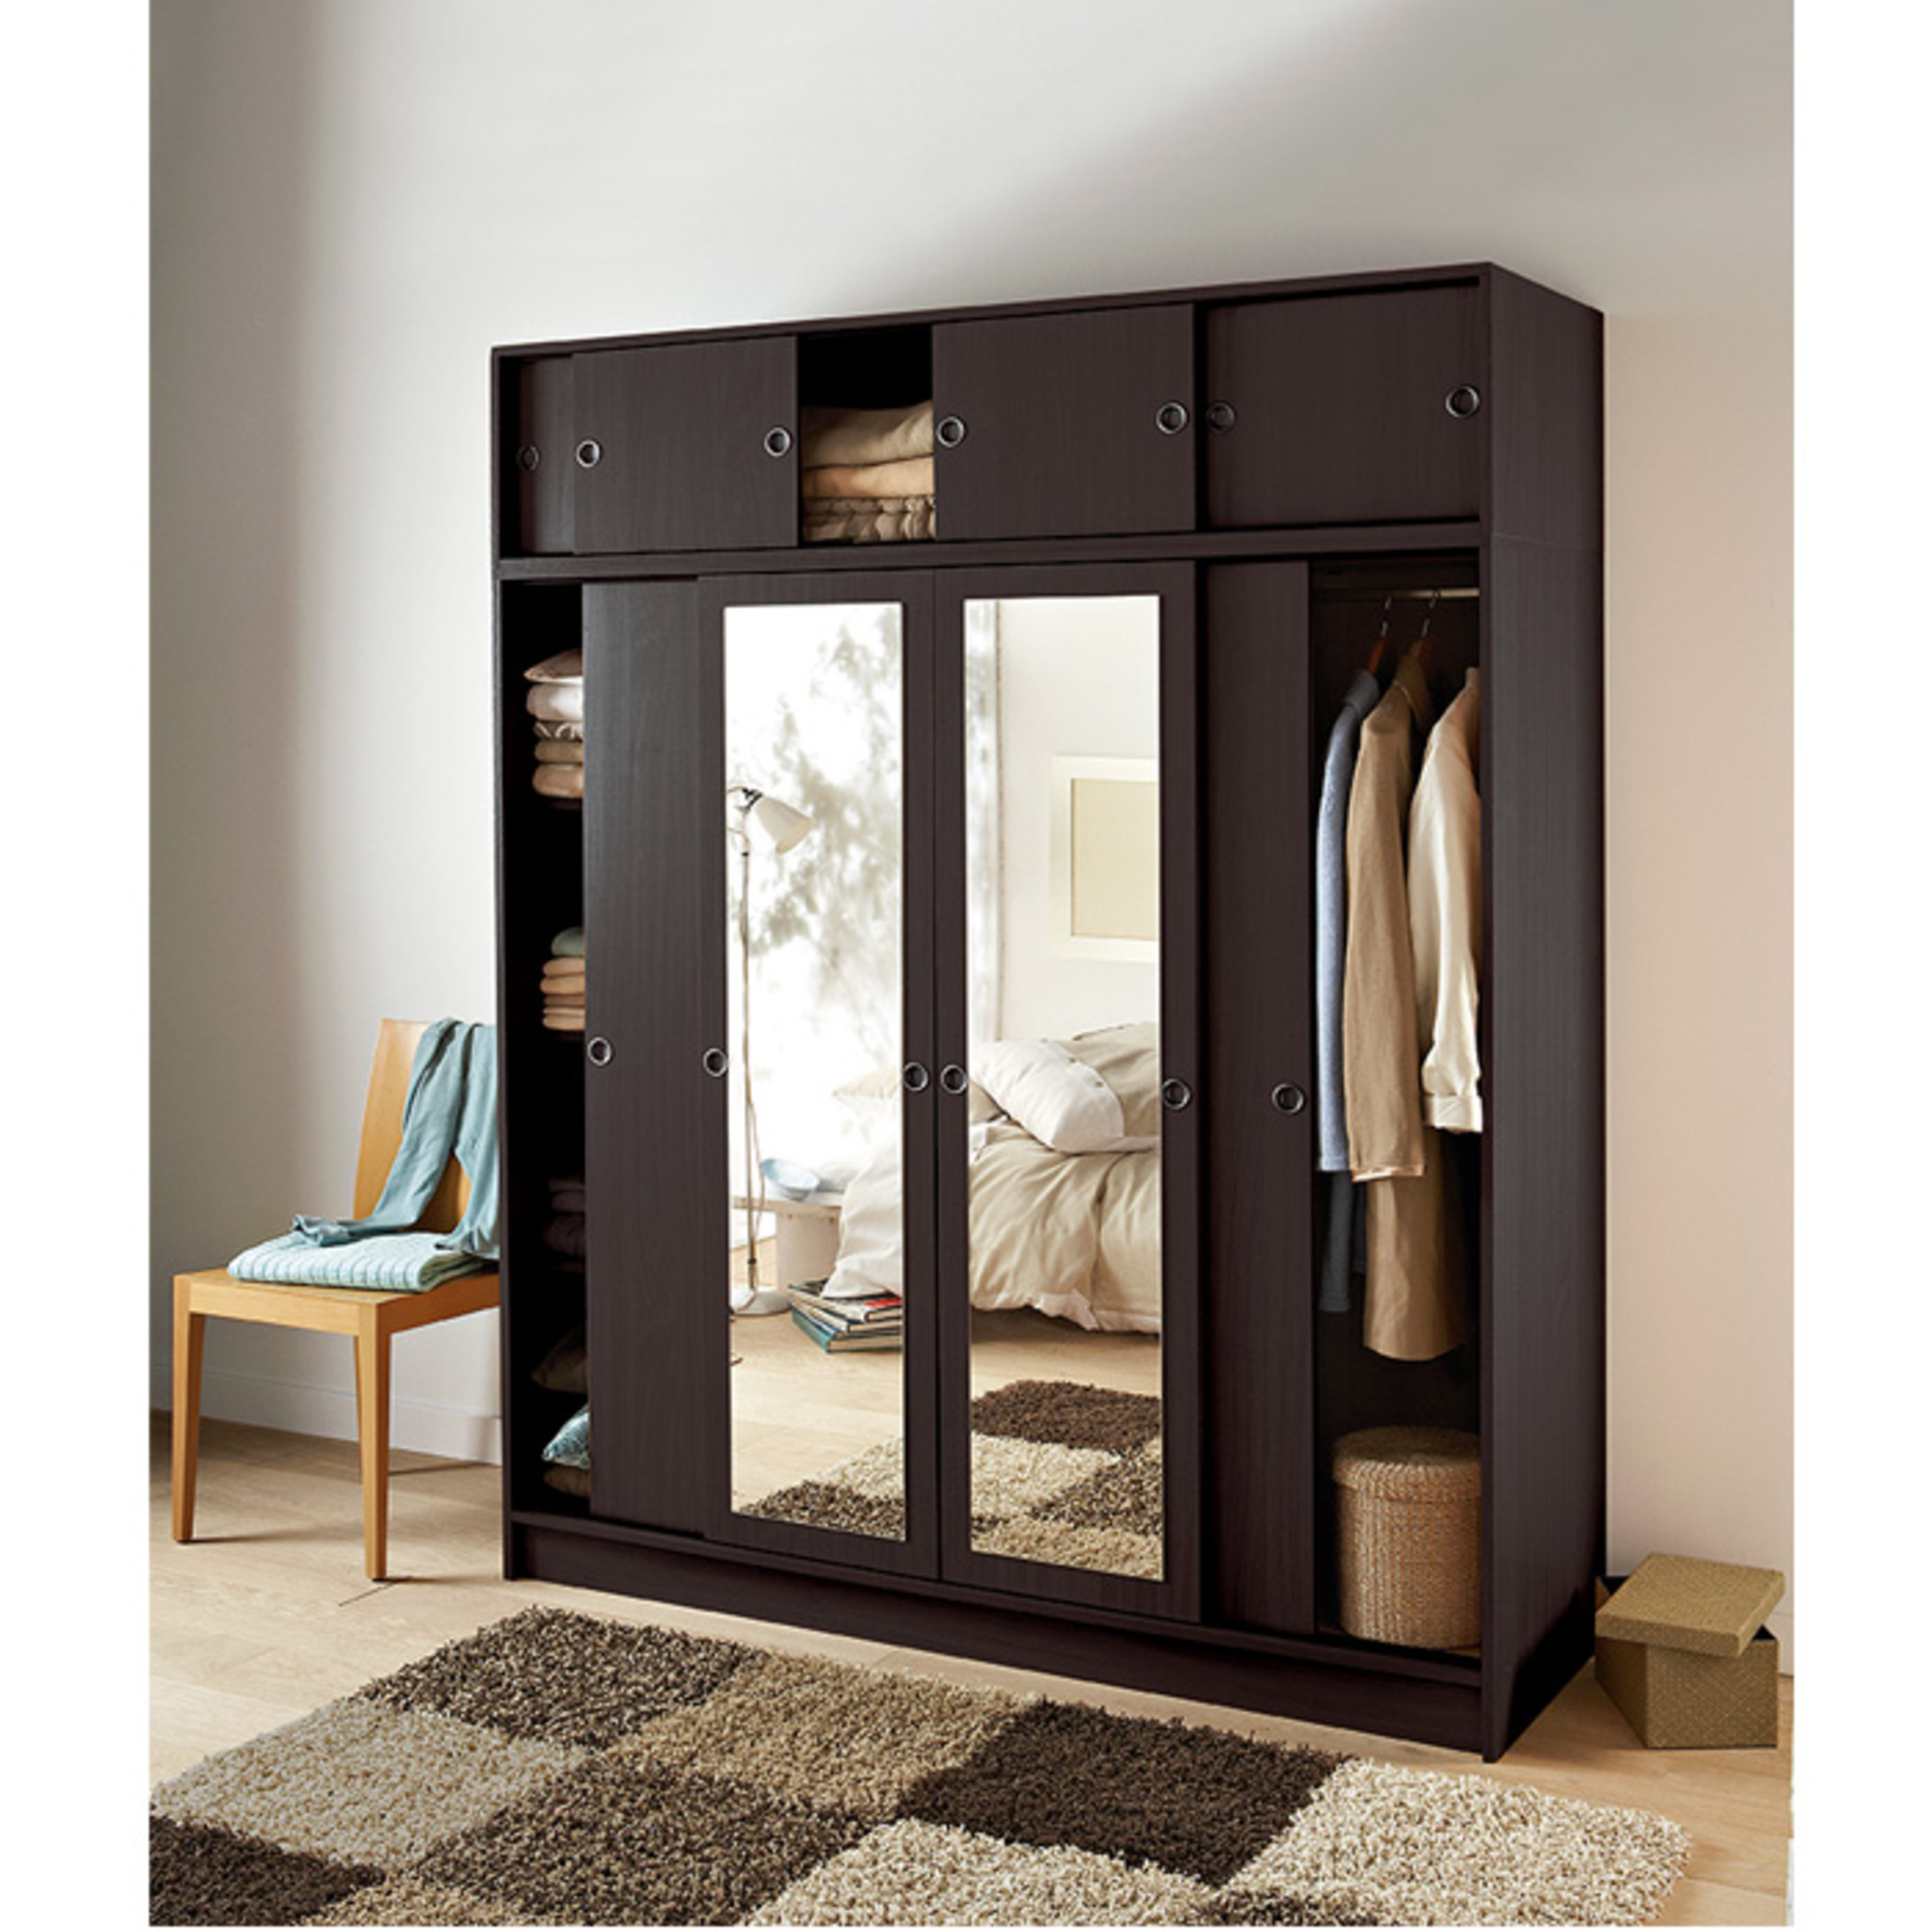 fabulous miroir de chambre ikea portes acheter u with meuble porte coulissante ikea. Black Bedroom Furniture Sets. Home Design Ideas